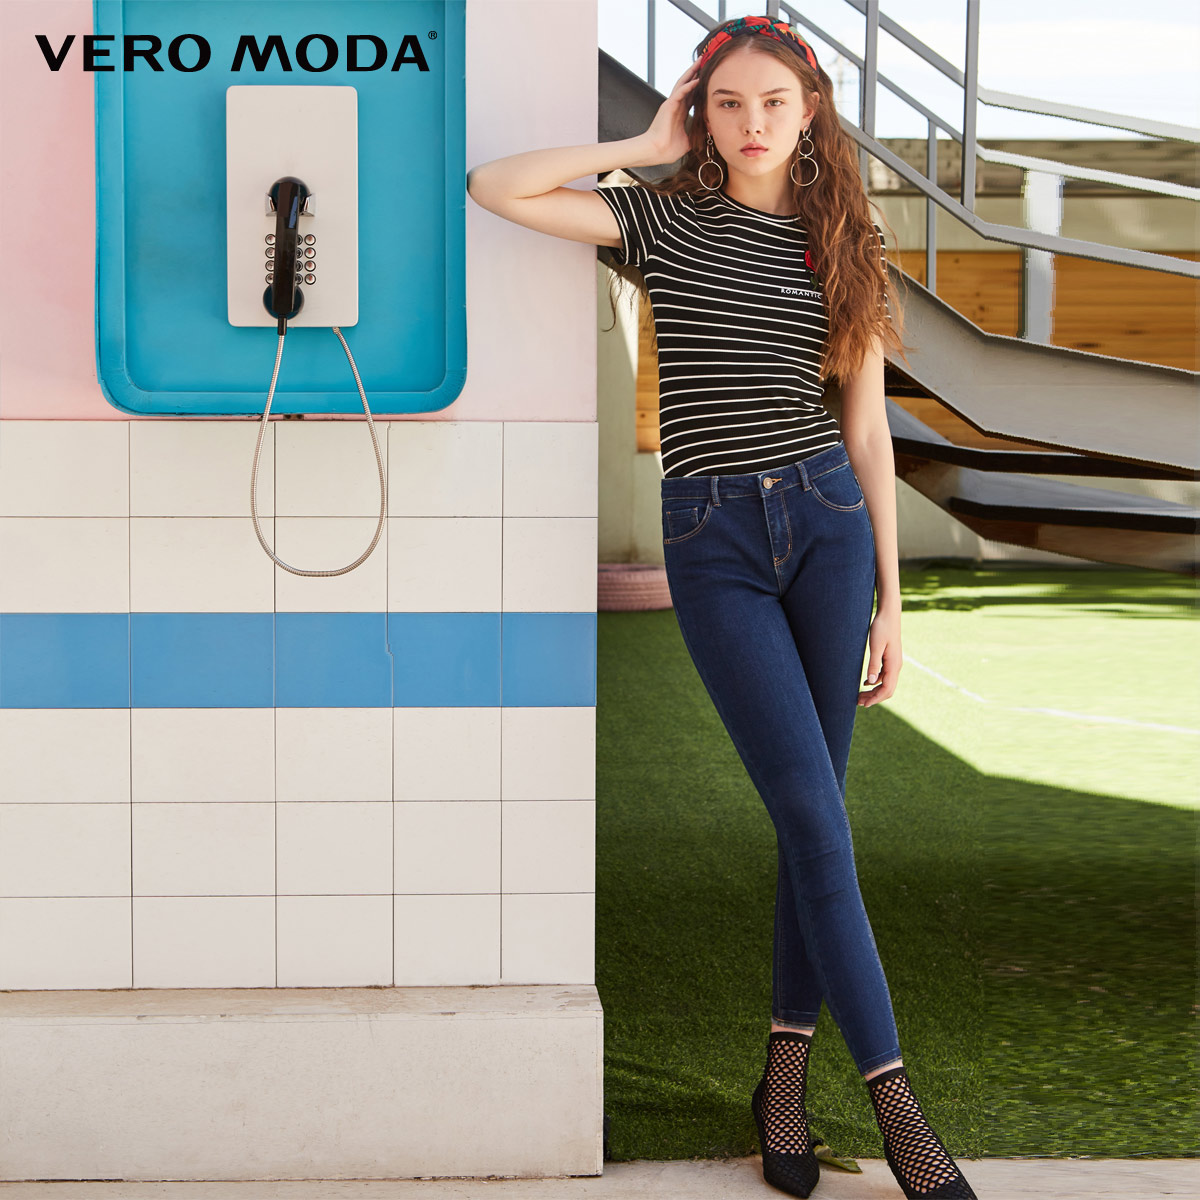 Vero Moda 2019 New Arrivals Women's Slim Fit Brushed Villus Lining Crop Jeans | 318349555